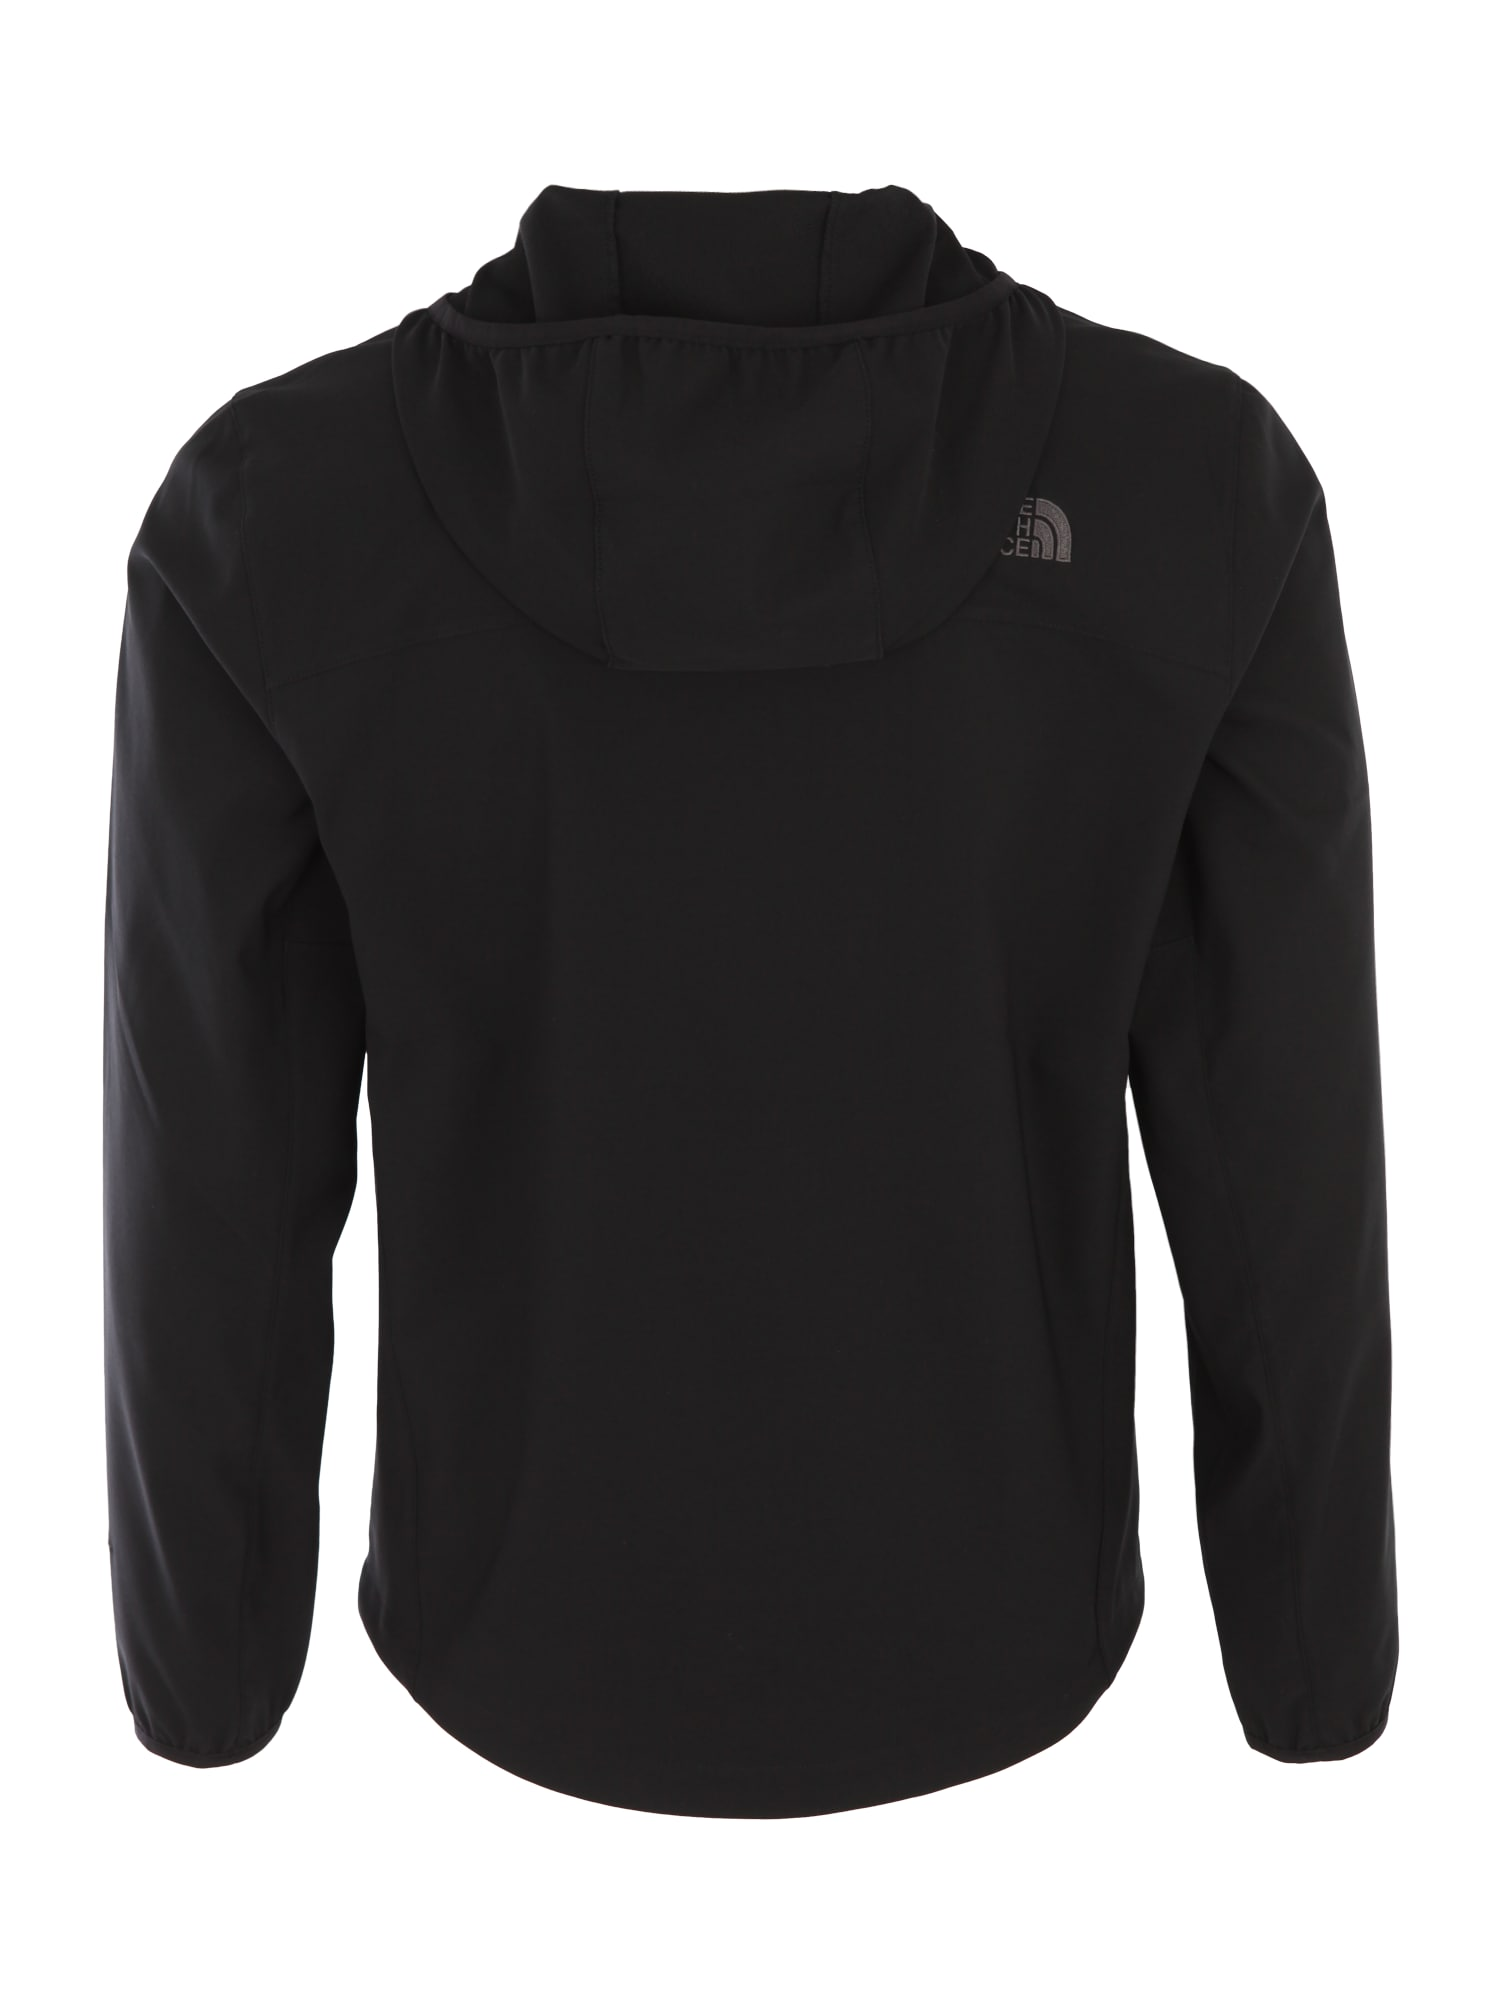 THE NORTH FACE, Heren Sportjas 'Nimble', zwart